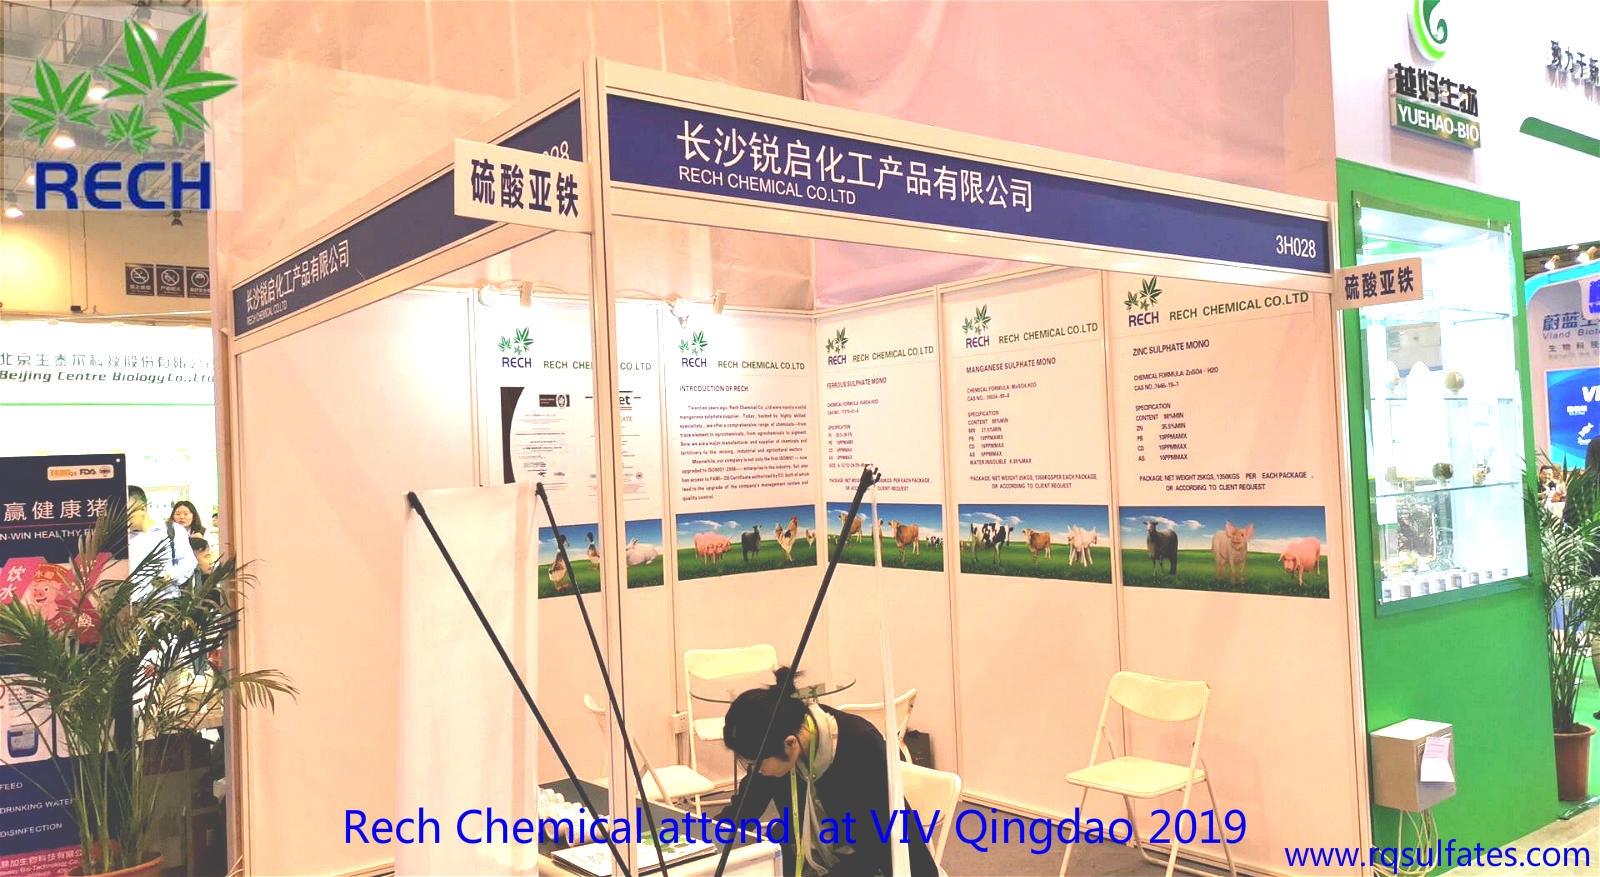 Rech Chemical Co. Ltd Welcome you at VIV Qingdao Asian 2019